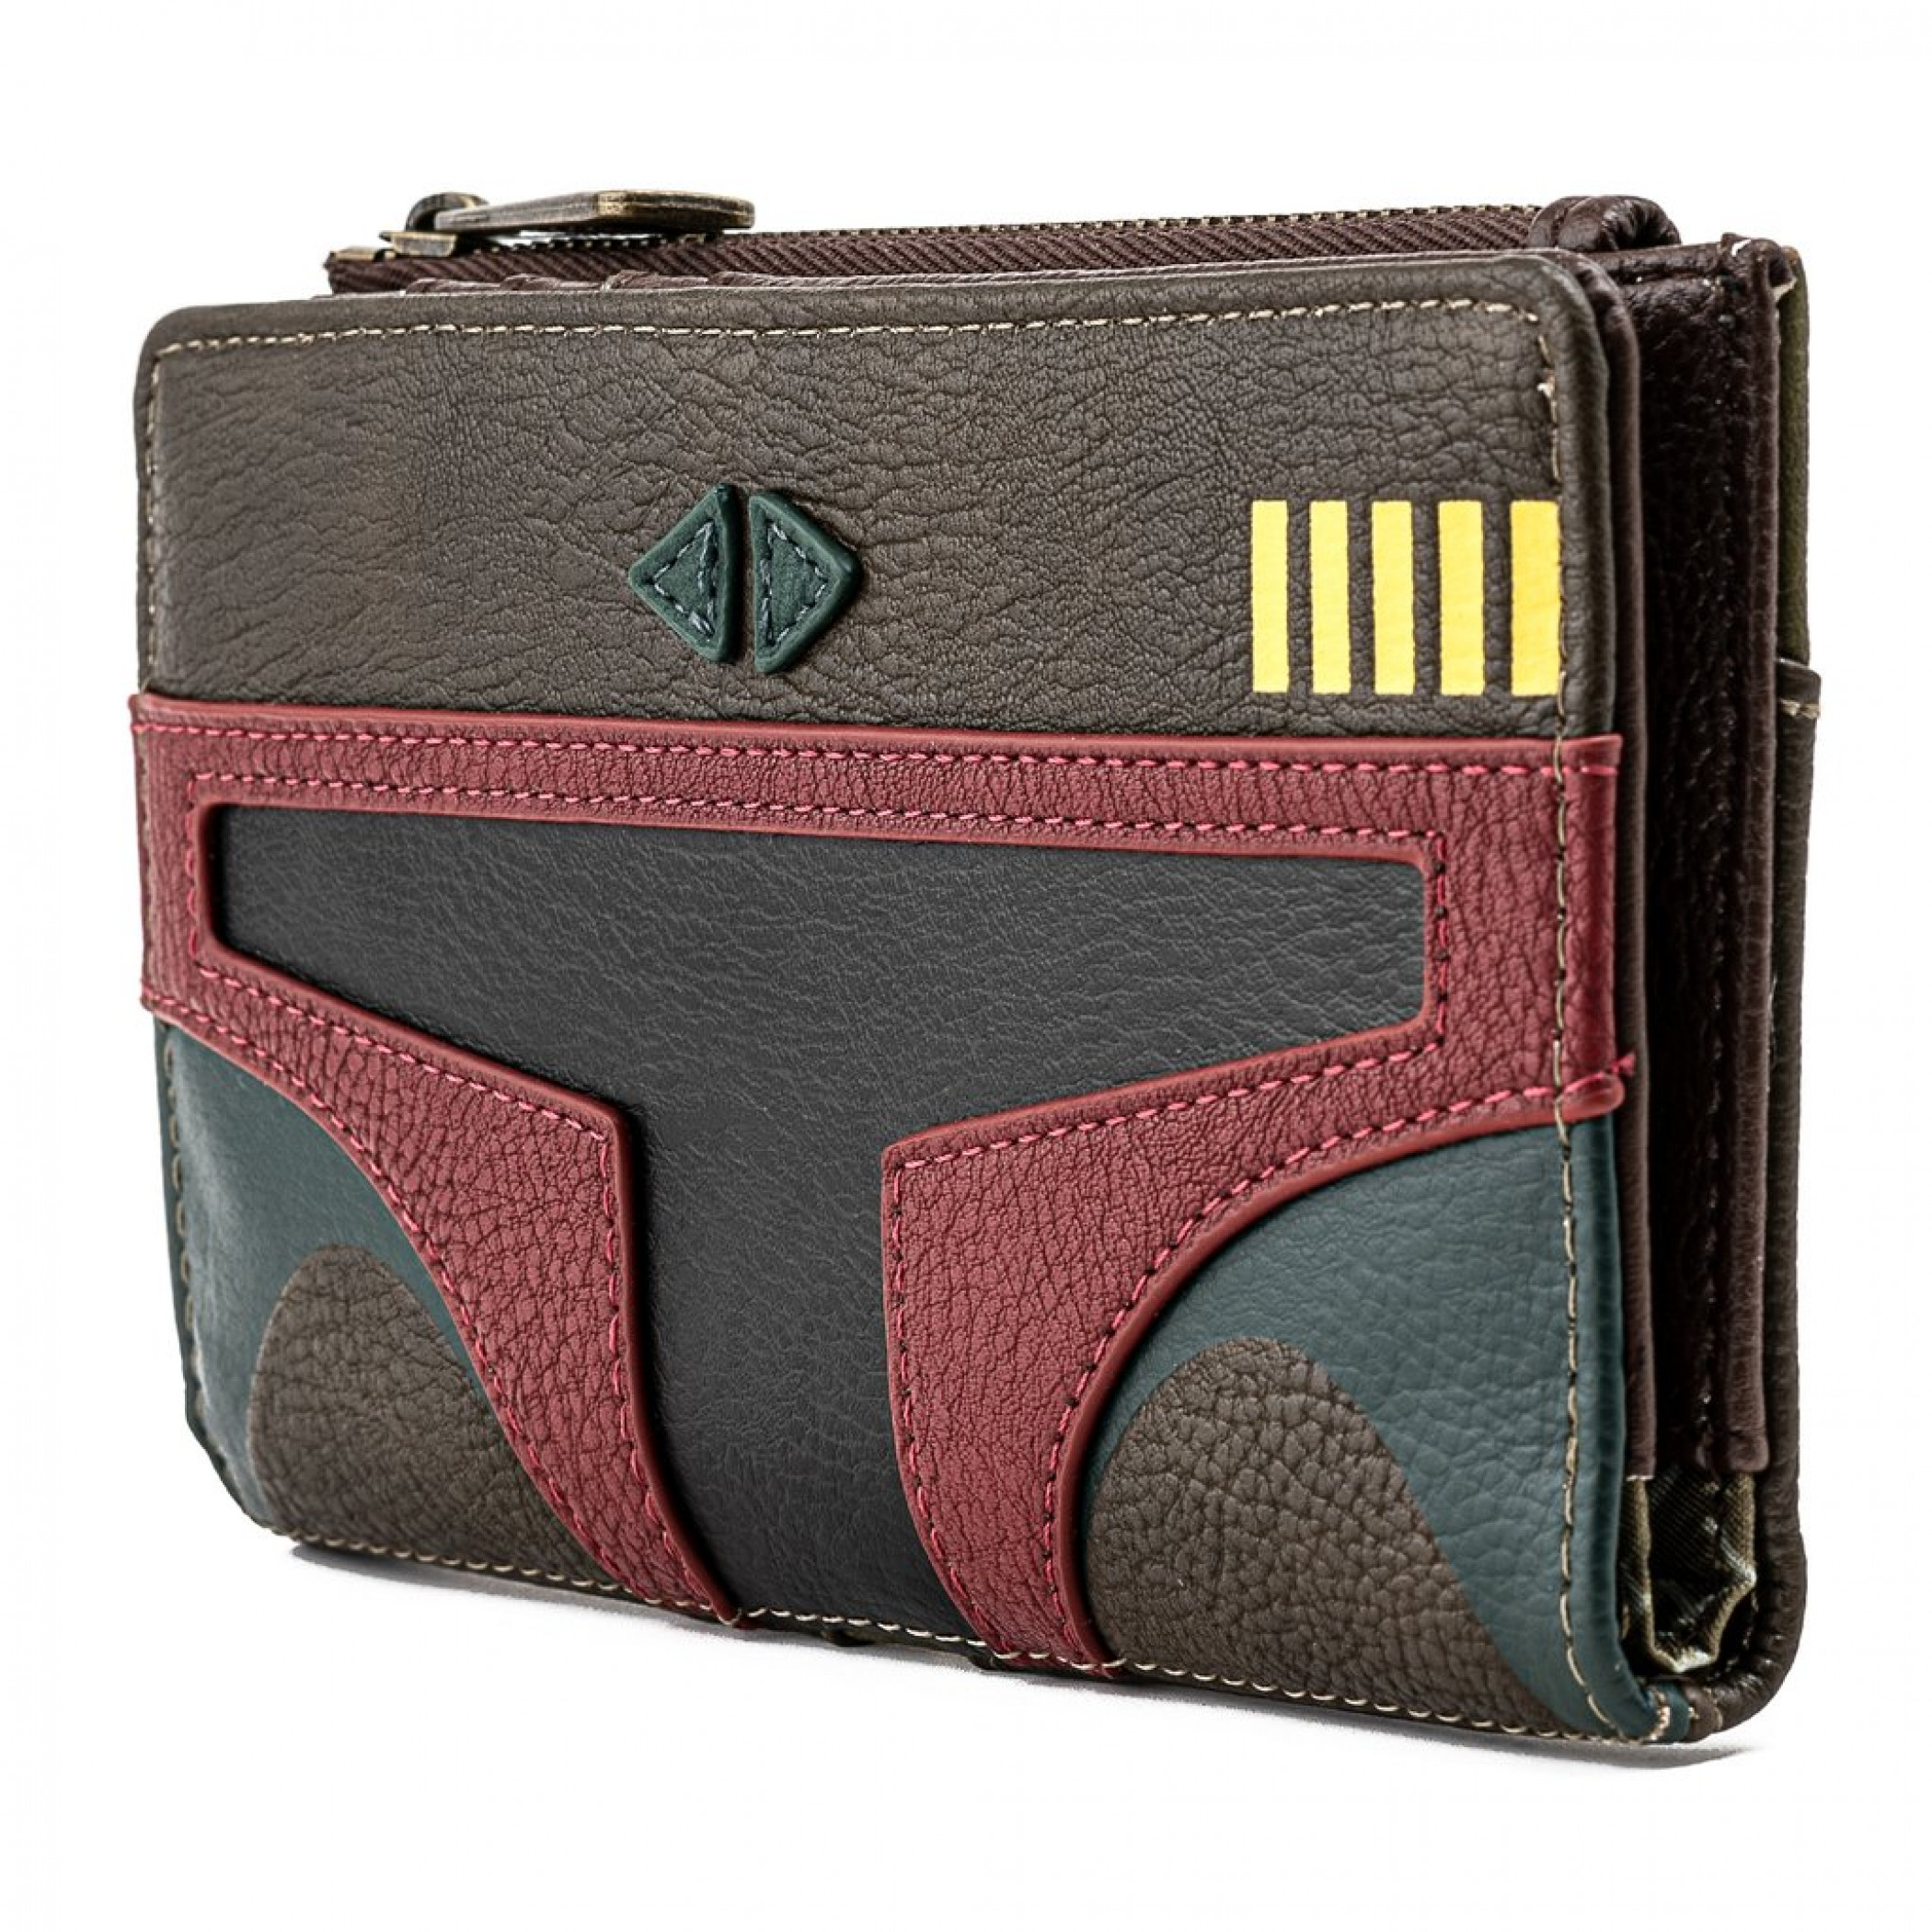 Star Wars Boba Fett Cosplay Wallet by Loungefly